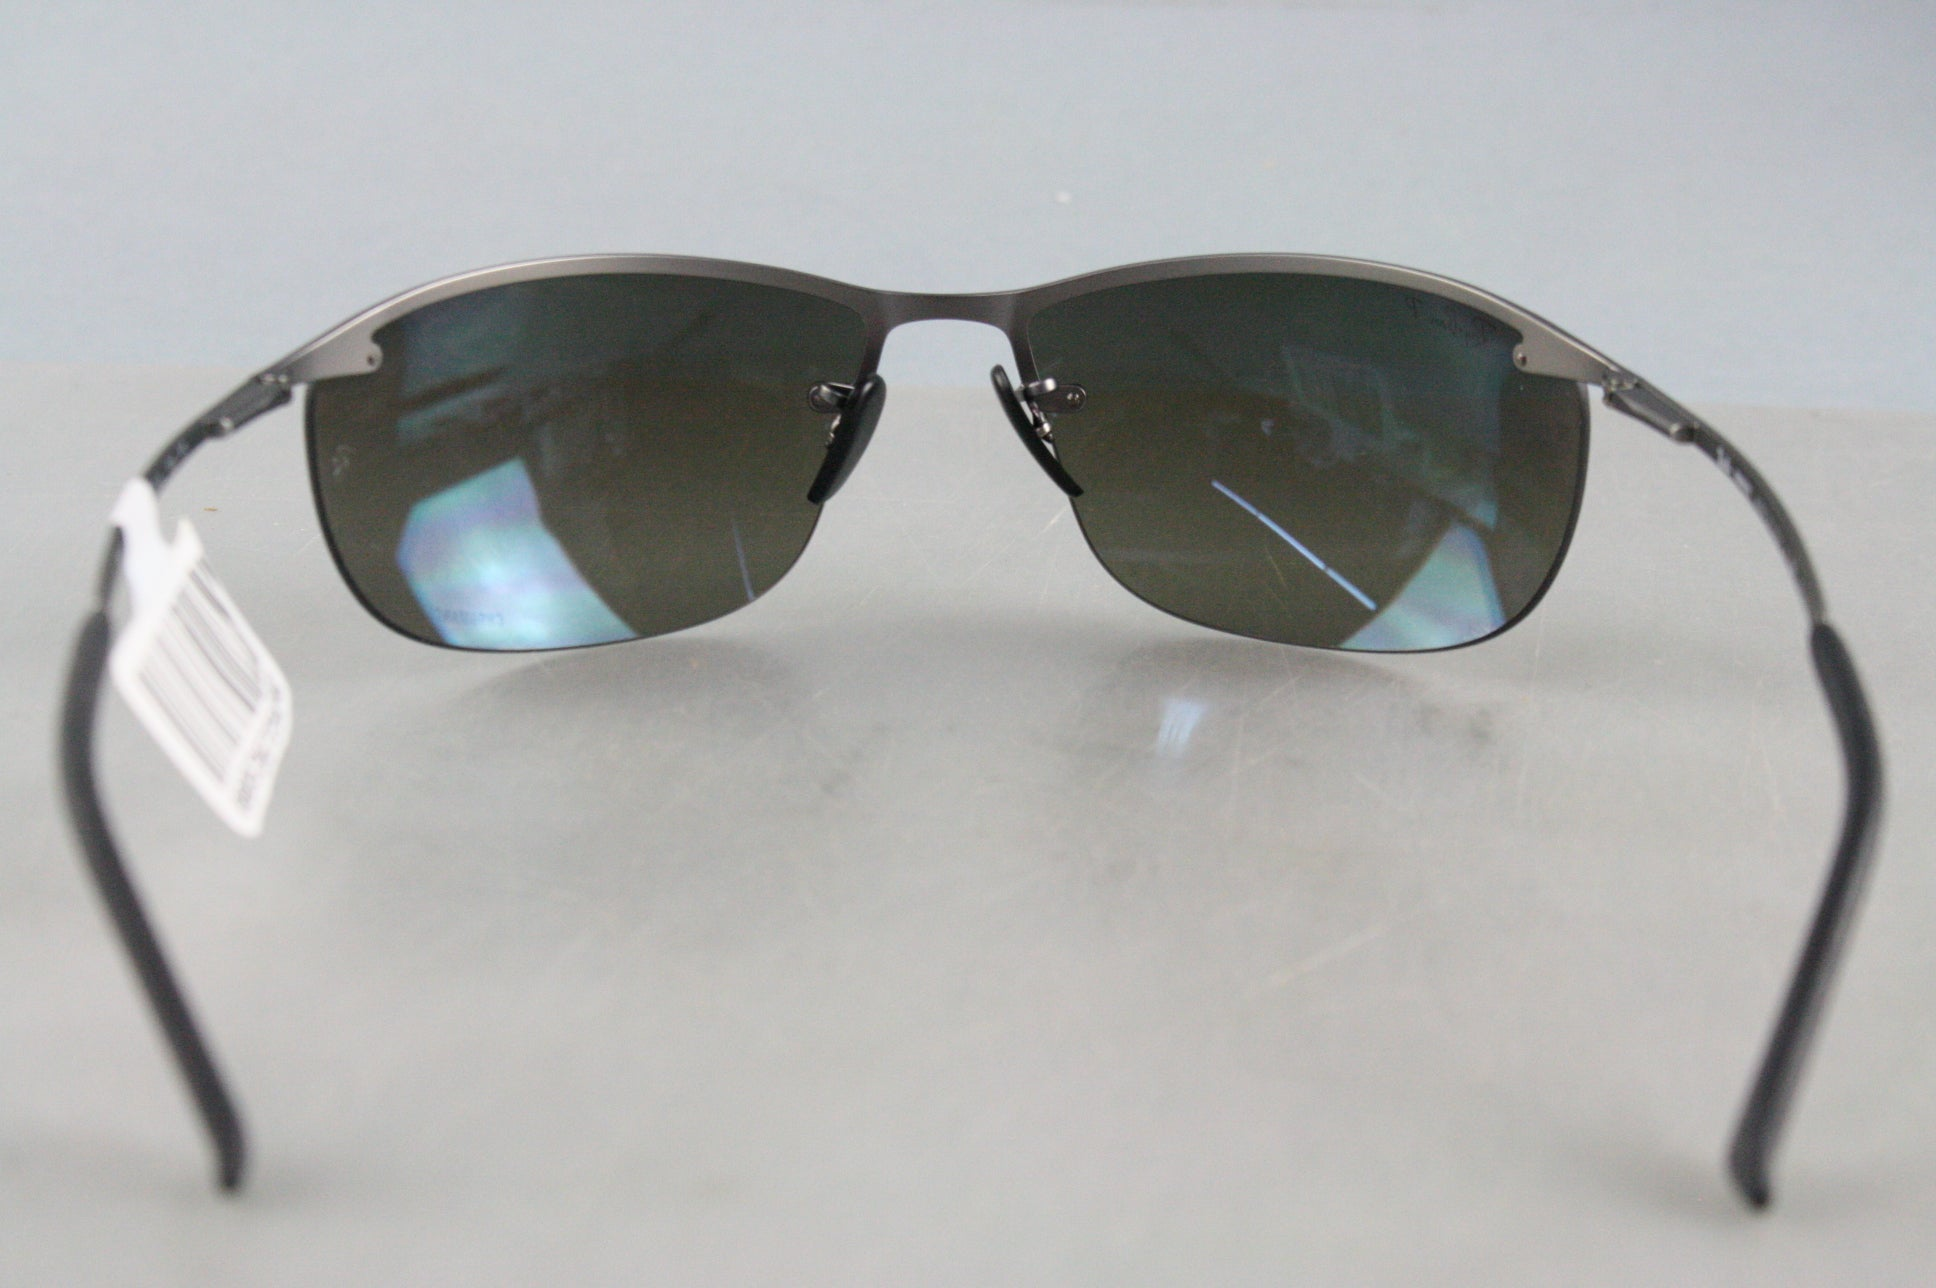 RayBan RB3542-029/5J MATTE GUNMETAL grey mirror Polarized 63mm Men's Sunglasses